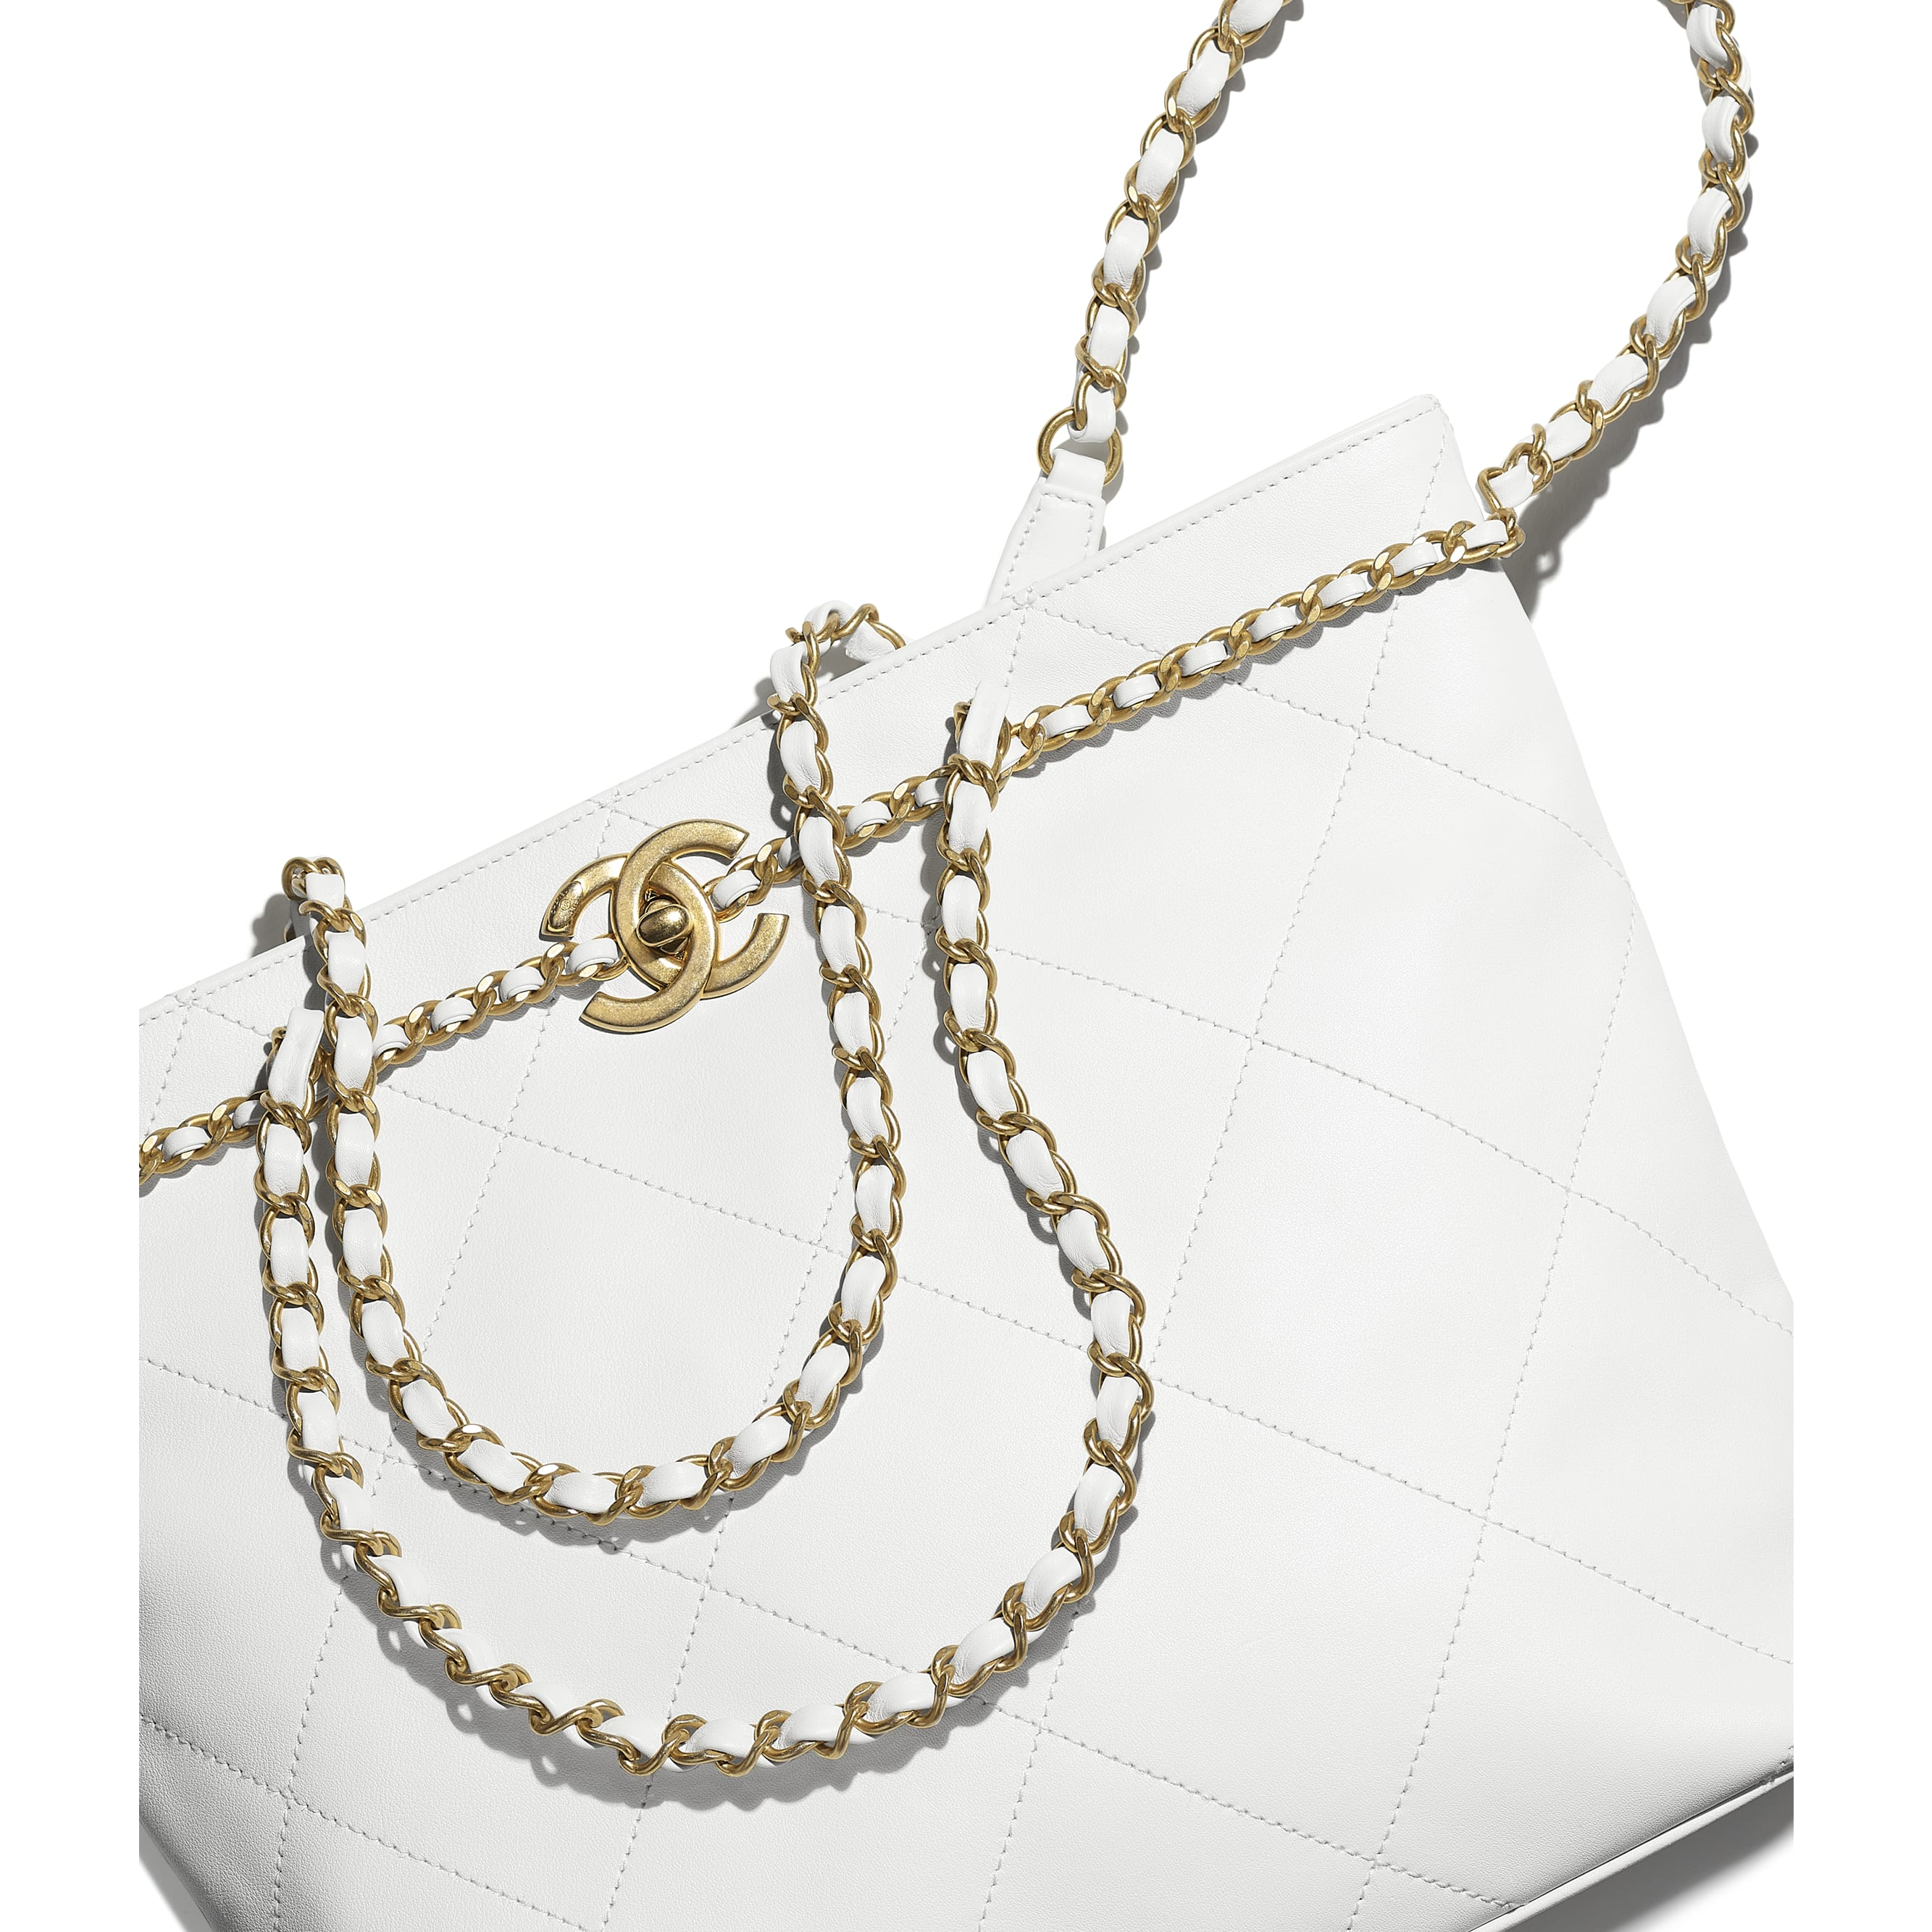 Small Tote - White - Calfskin & Gold-Tone Metal - CHANEL - Extra view - see standard sized version